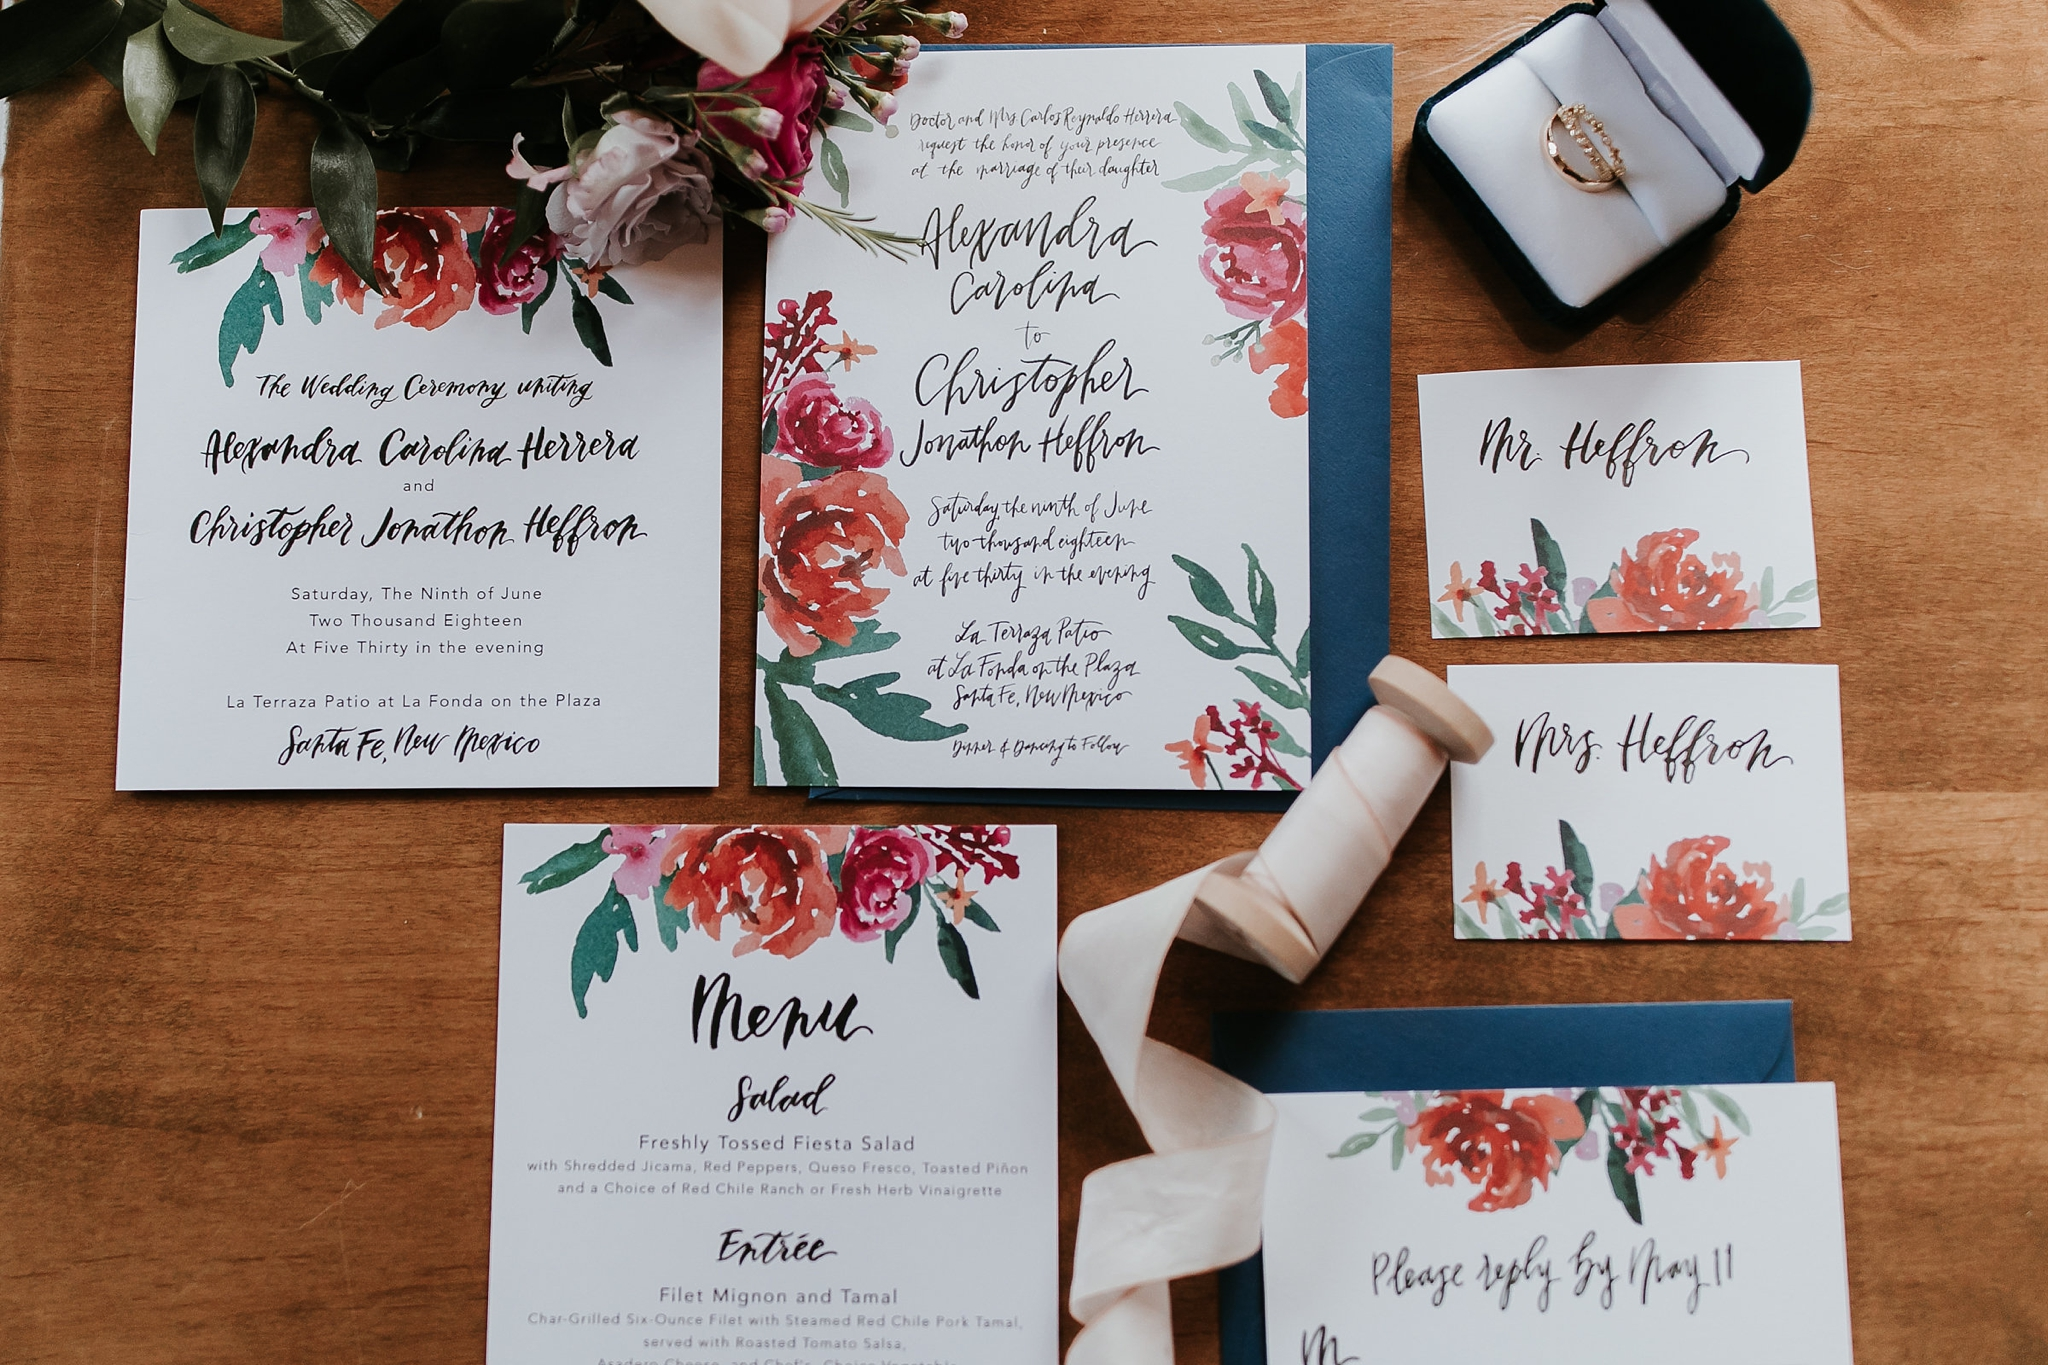 Alicia+lucia+photography+-+albuquerque+wedding+photographer+-+santa+fe+wedding+photography+-+new+mexico+wedding+photographer+-+new+mexico+wedding+-+wedding+invitations+-+invitation+suite+-+wedding+inspo_0029.jpg